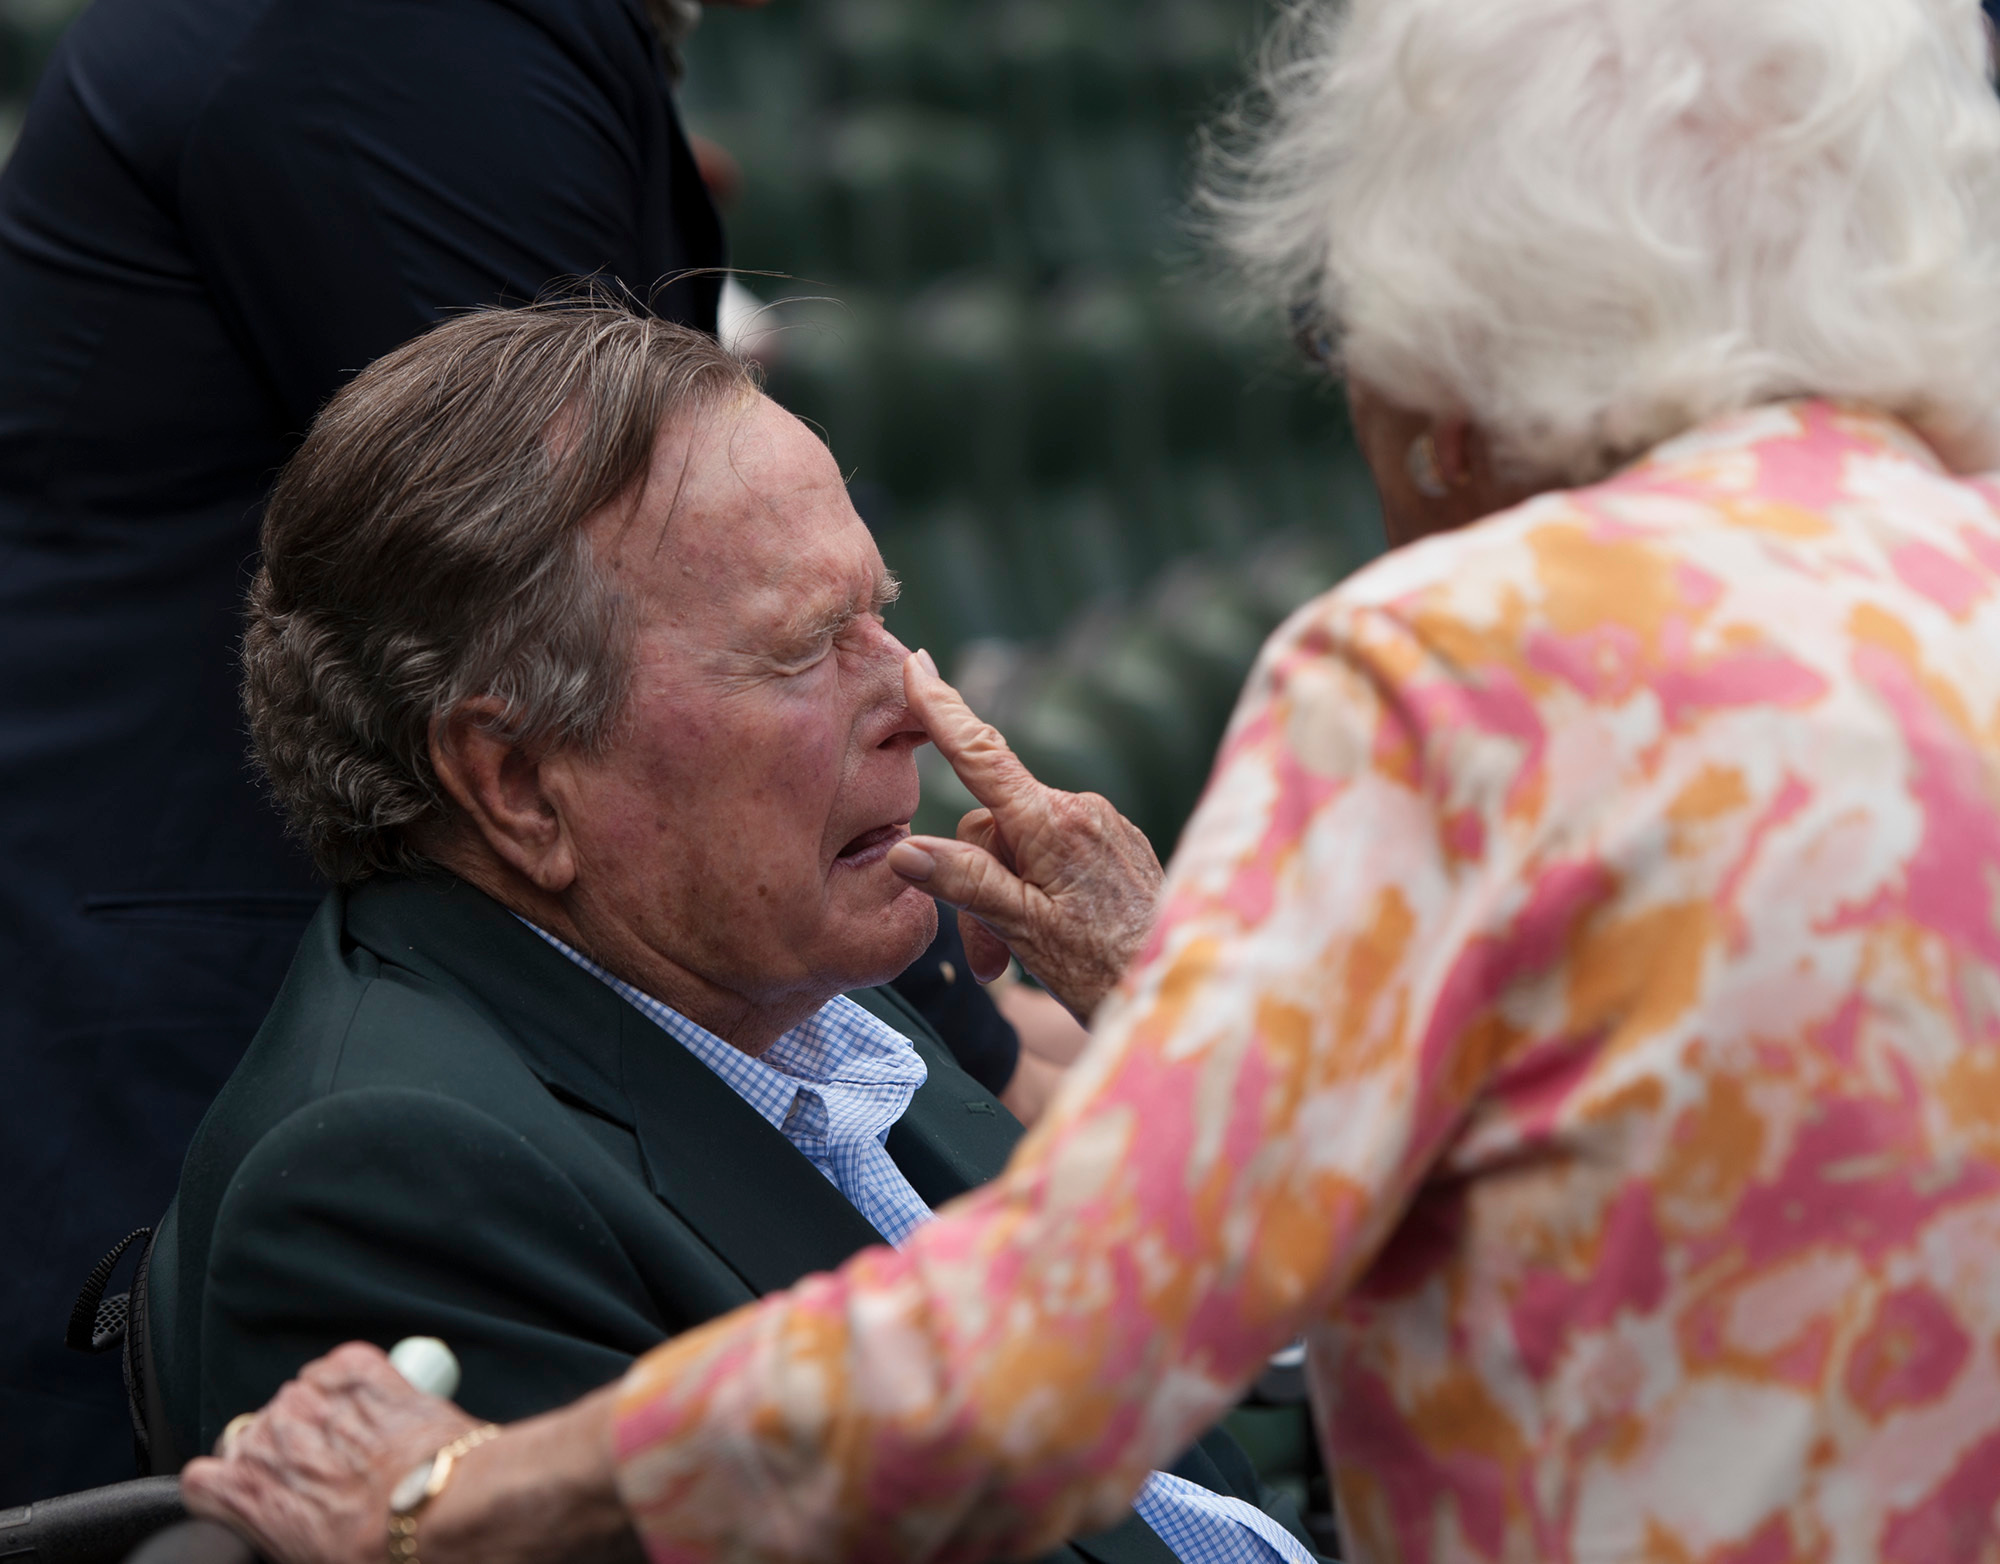 "FILE - In this May 3, 2015, file photo, Barbara Bush applies sunscreen to the nose of her husband, former President George H.W. Bush, before the Seattle Mariners take on the Houston Astros in a baseball game in Houston, Texas. Former first couple George and Barbara Bush's relationship is a true love story, described by granddaughter Jenna Bush Hager as ""remarkable."" They met at a Christmas dance. She was 17. He was 18. Two years later they were married. Now 73 years later, with Barbara Bush declining further medical care for health problems, they are the longest-married couple in presidential history. (AP Photo/George Bridges, File)"